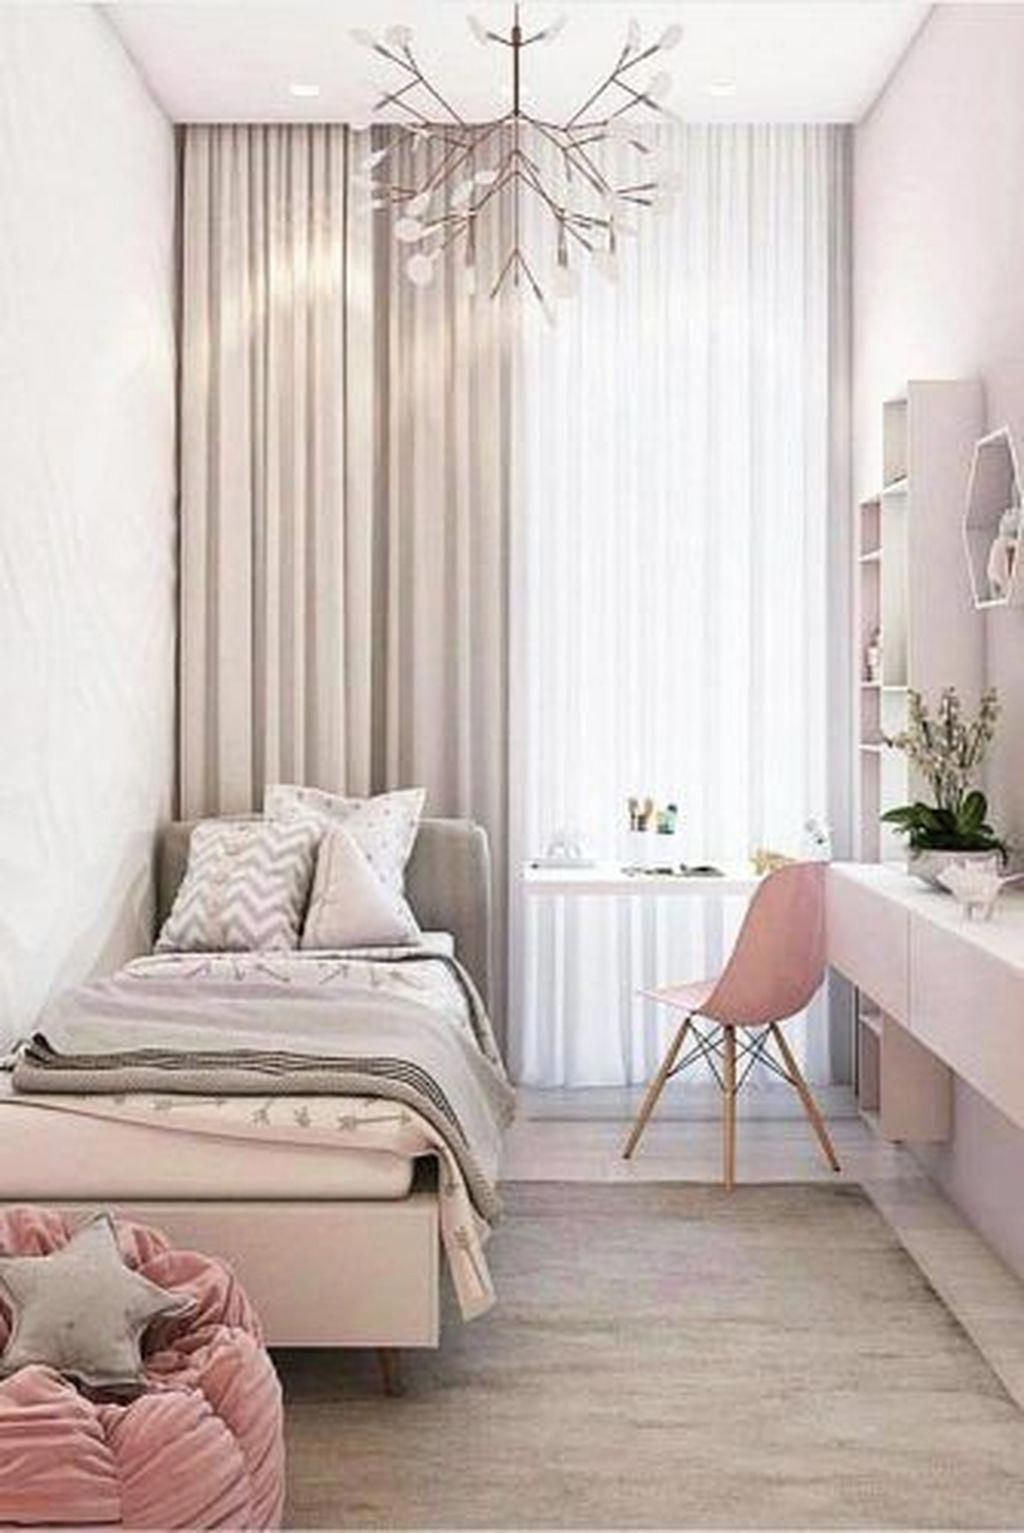 10 Stylish Small Bedroom Design Ideas Bedroom Layouts Small